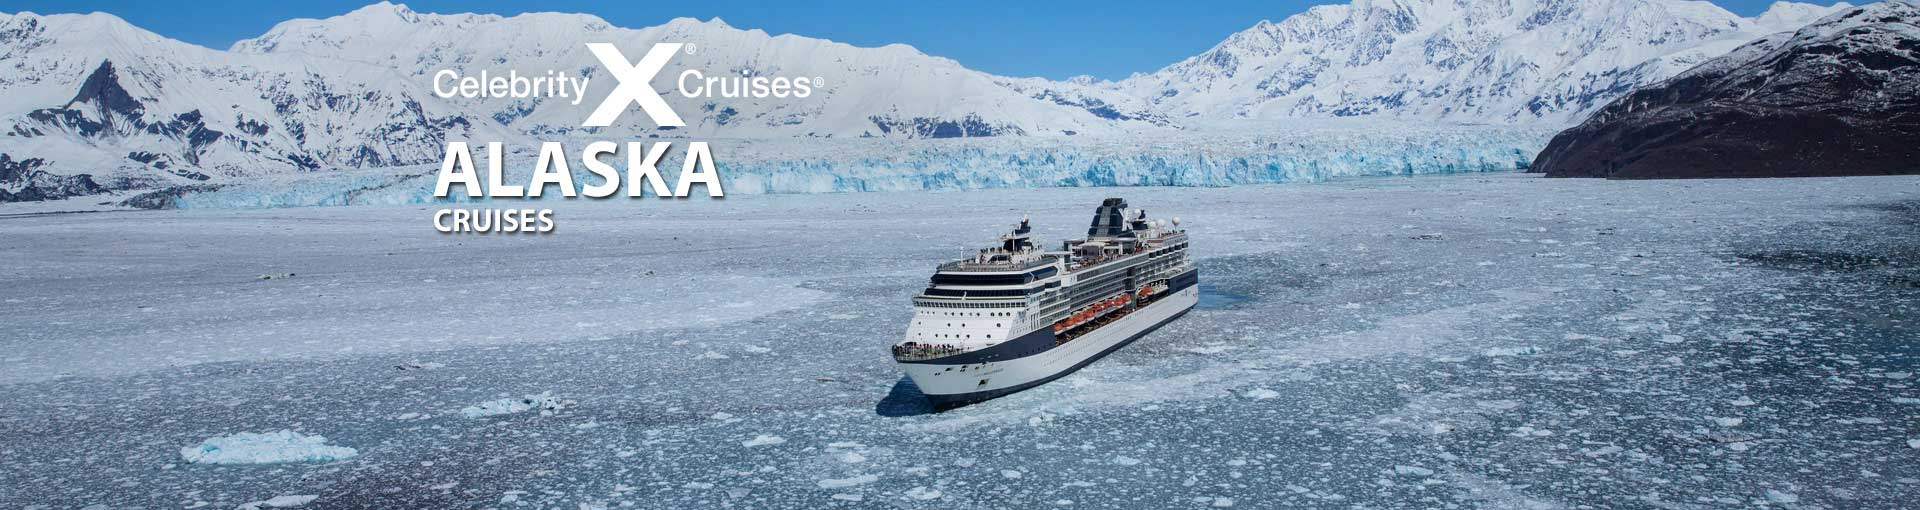 Celebrity Alaska Cruises 2018 And 2019 Alaskan Celebrity